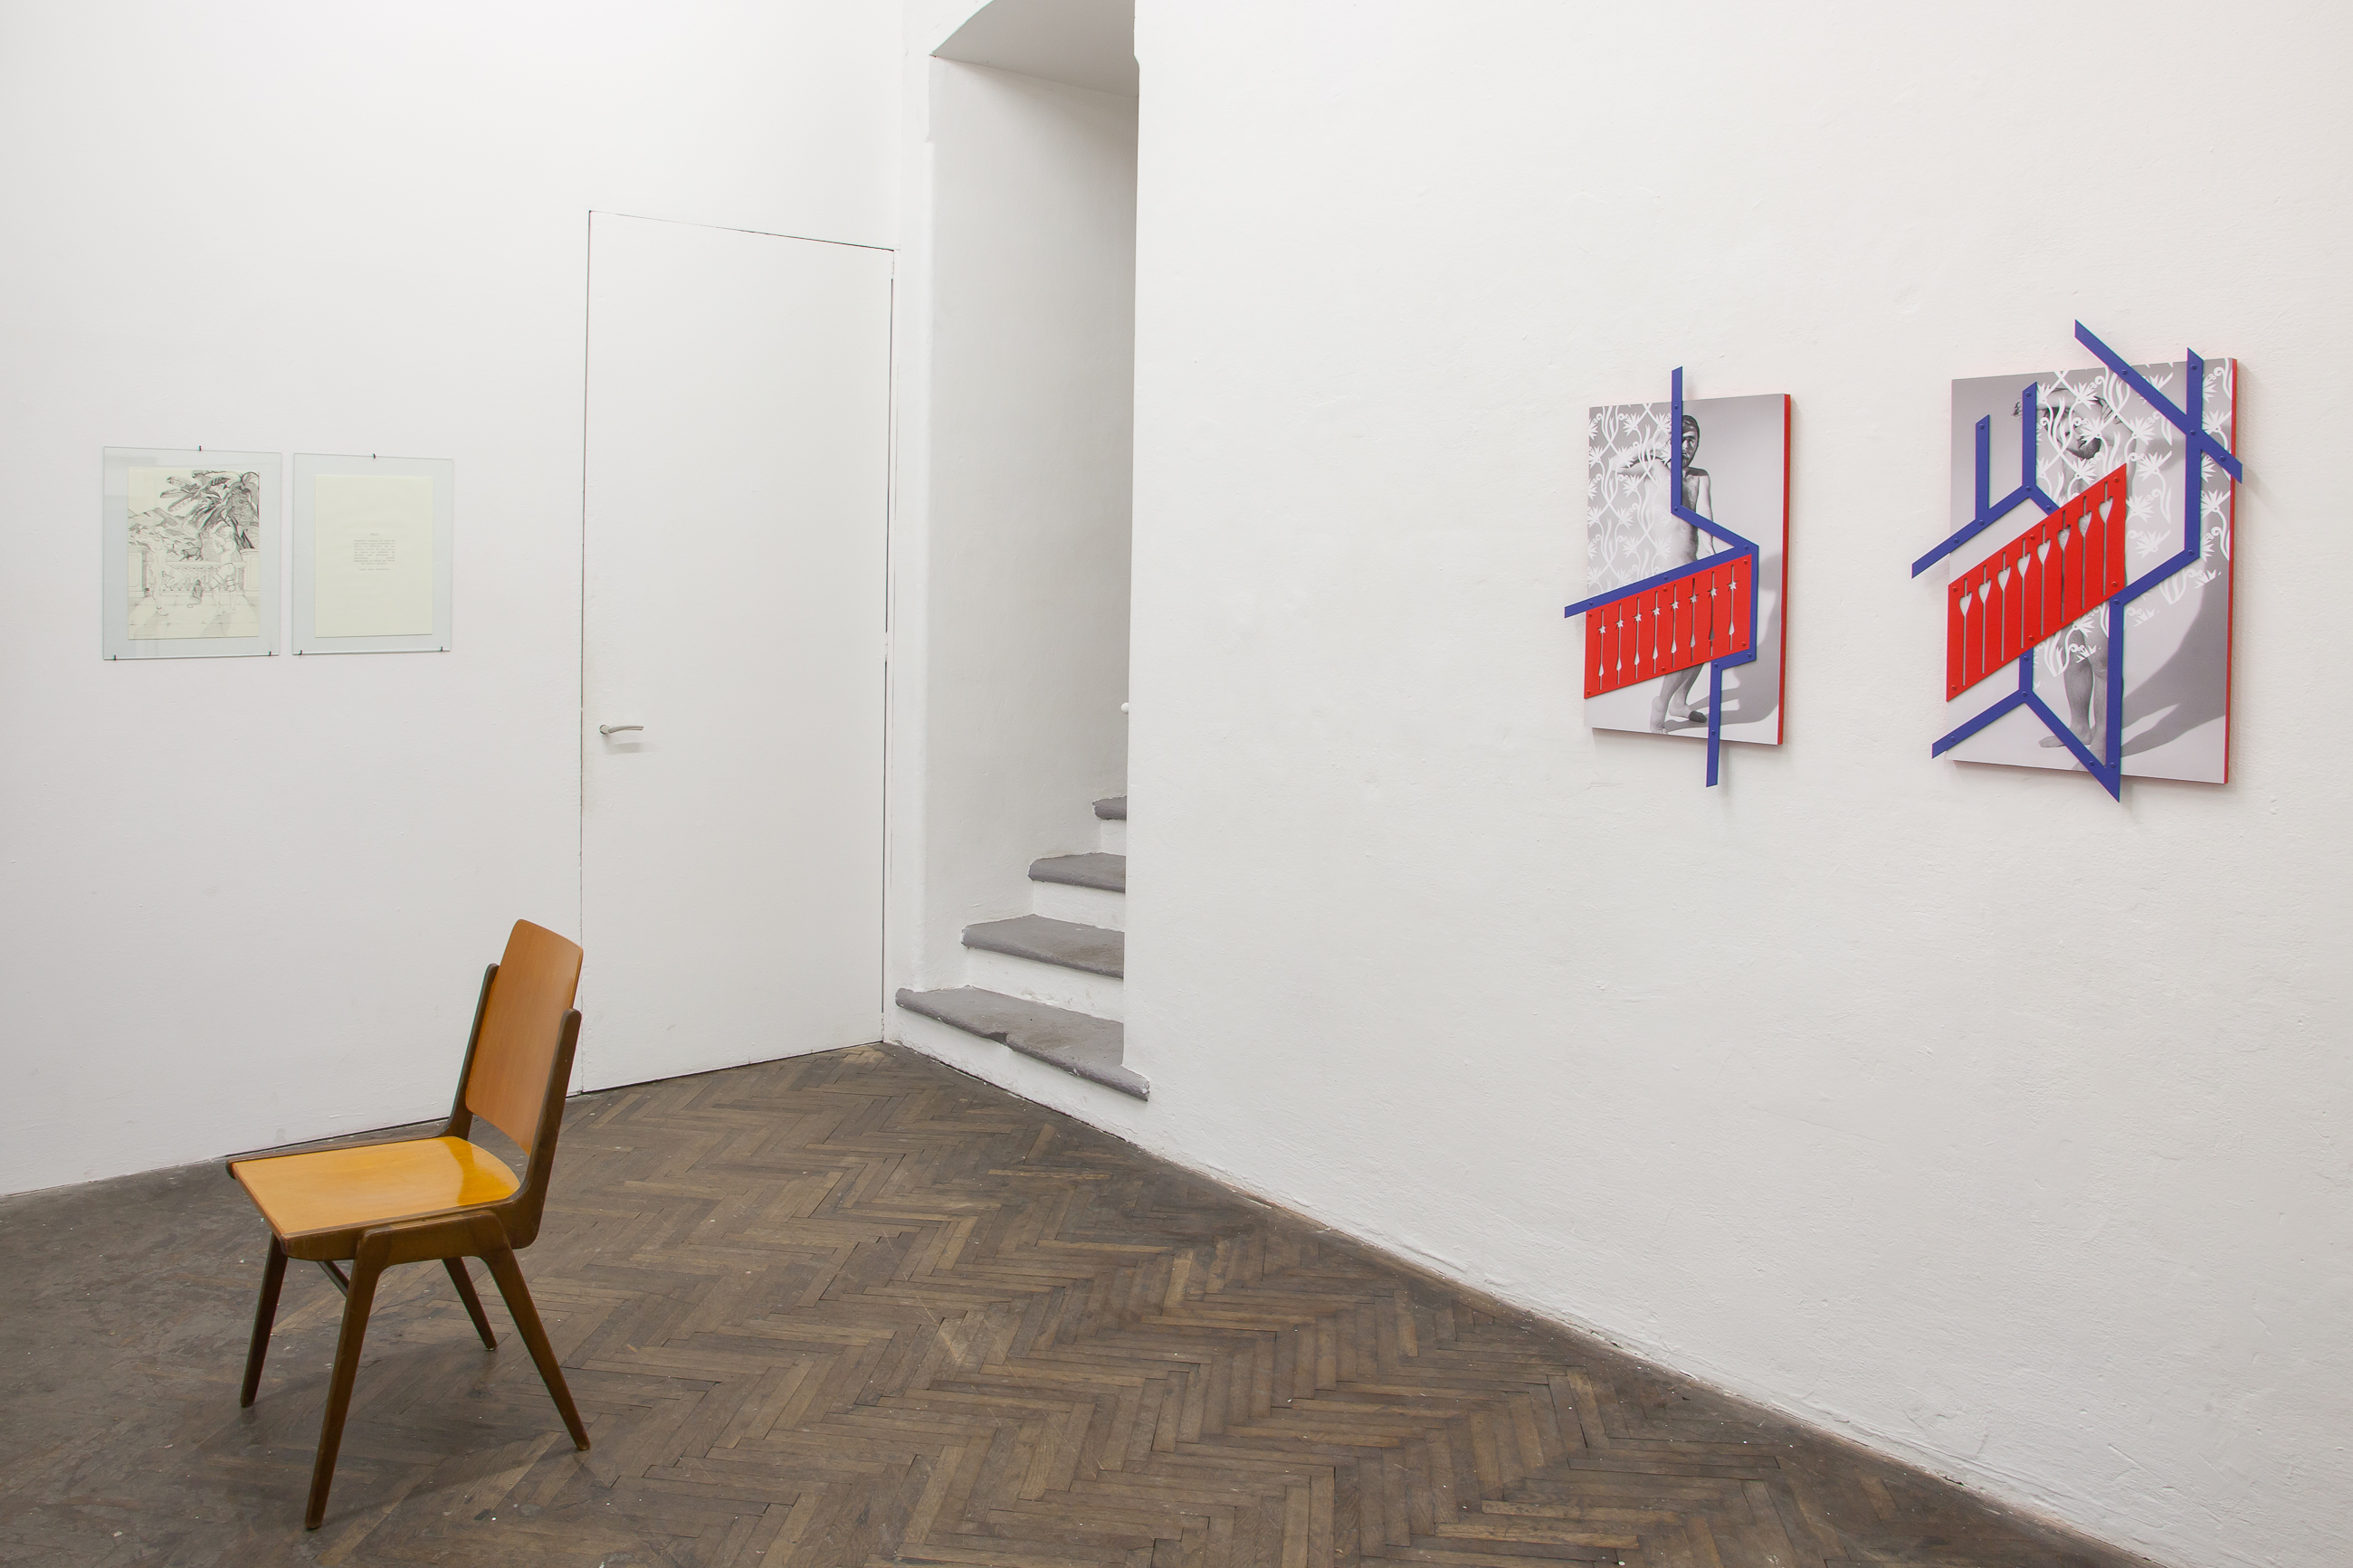 The will to change, exhibition view, 2020